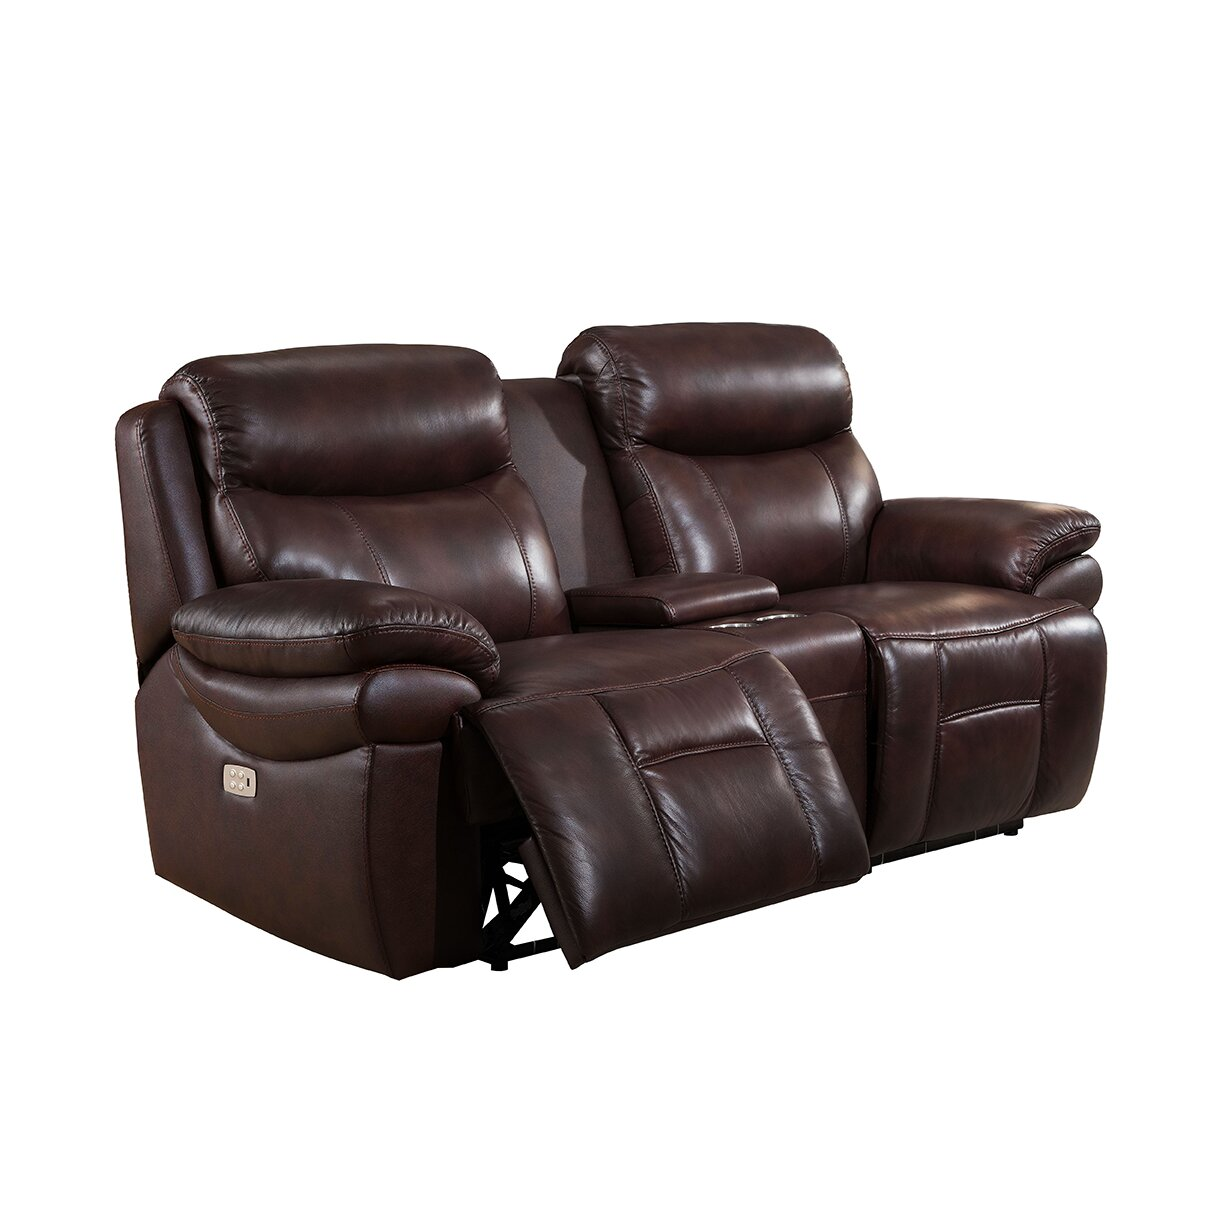 sanford 3 piece leather power reclining living room set with usb ports